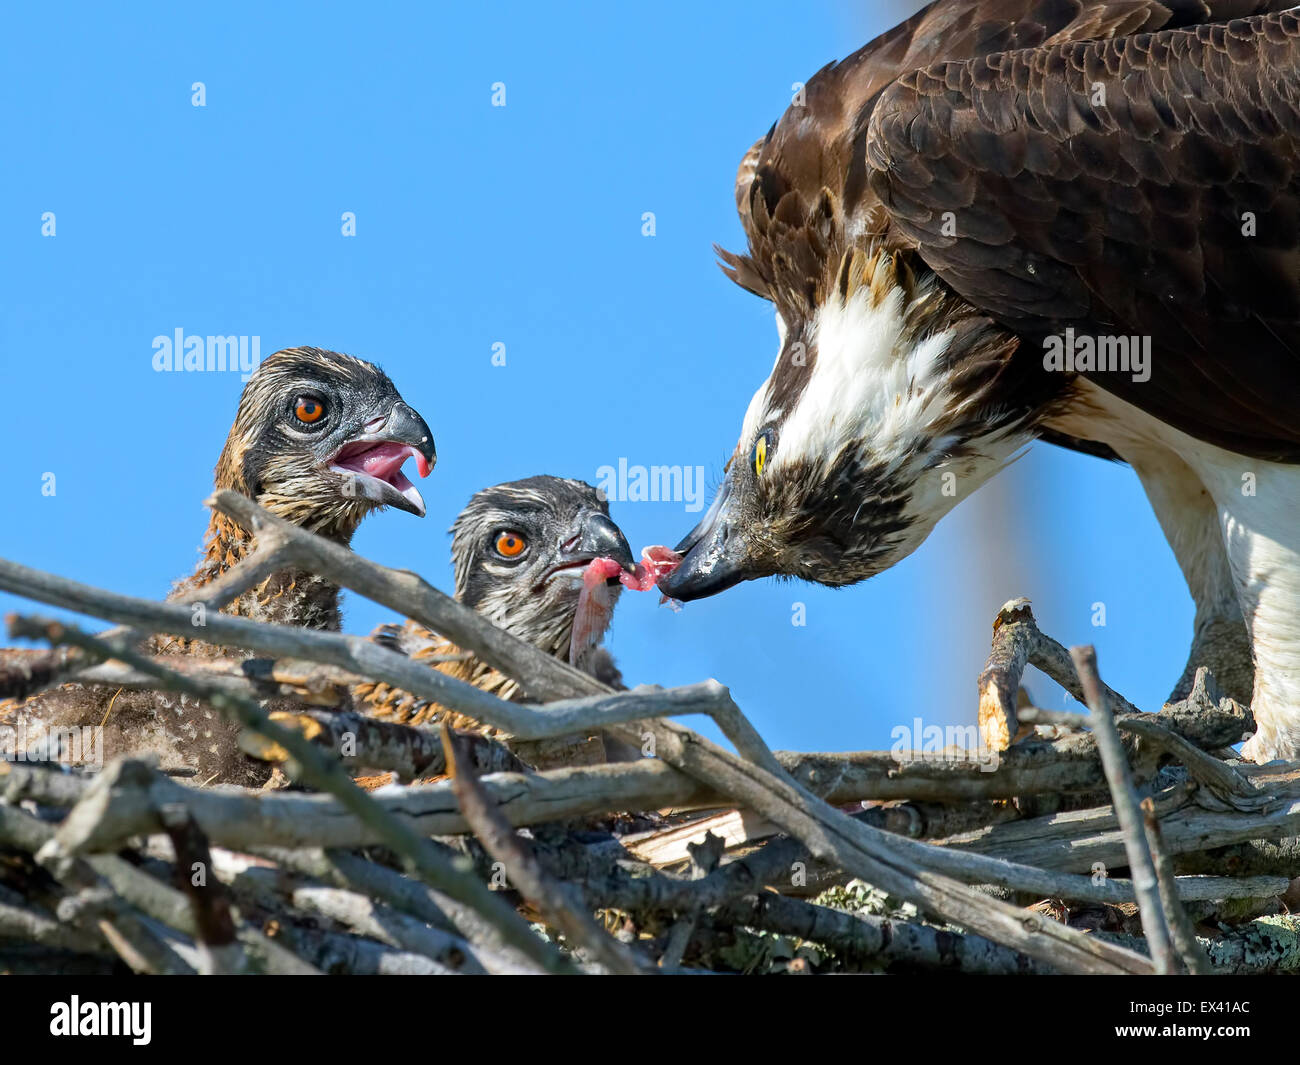 Osprey Feeding her young Chicks - Stock Image